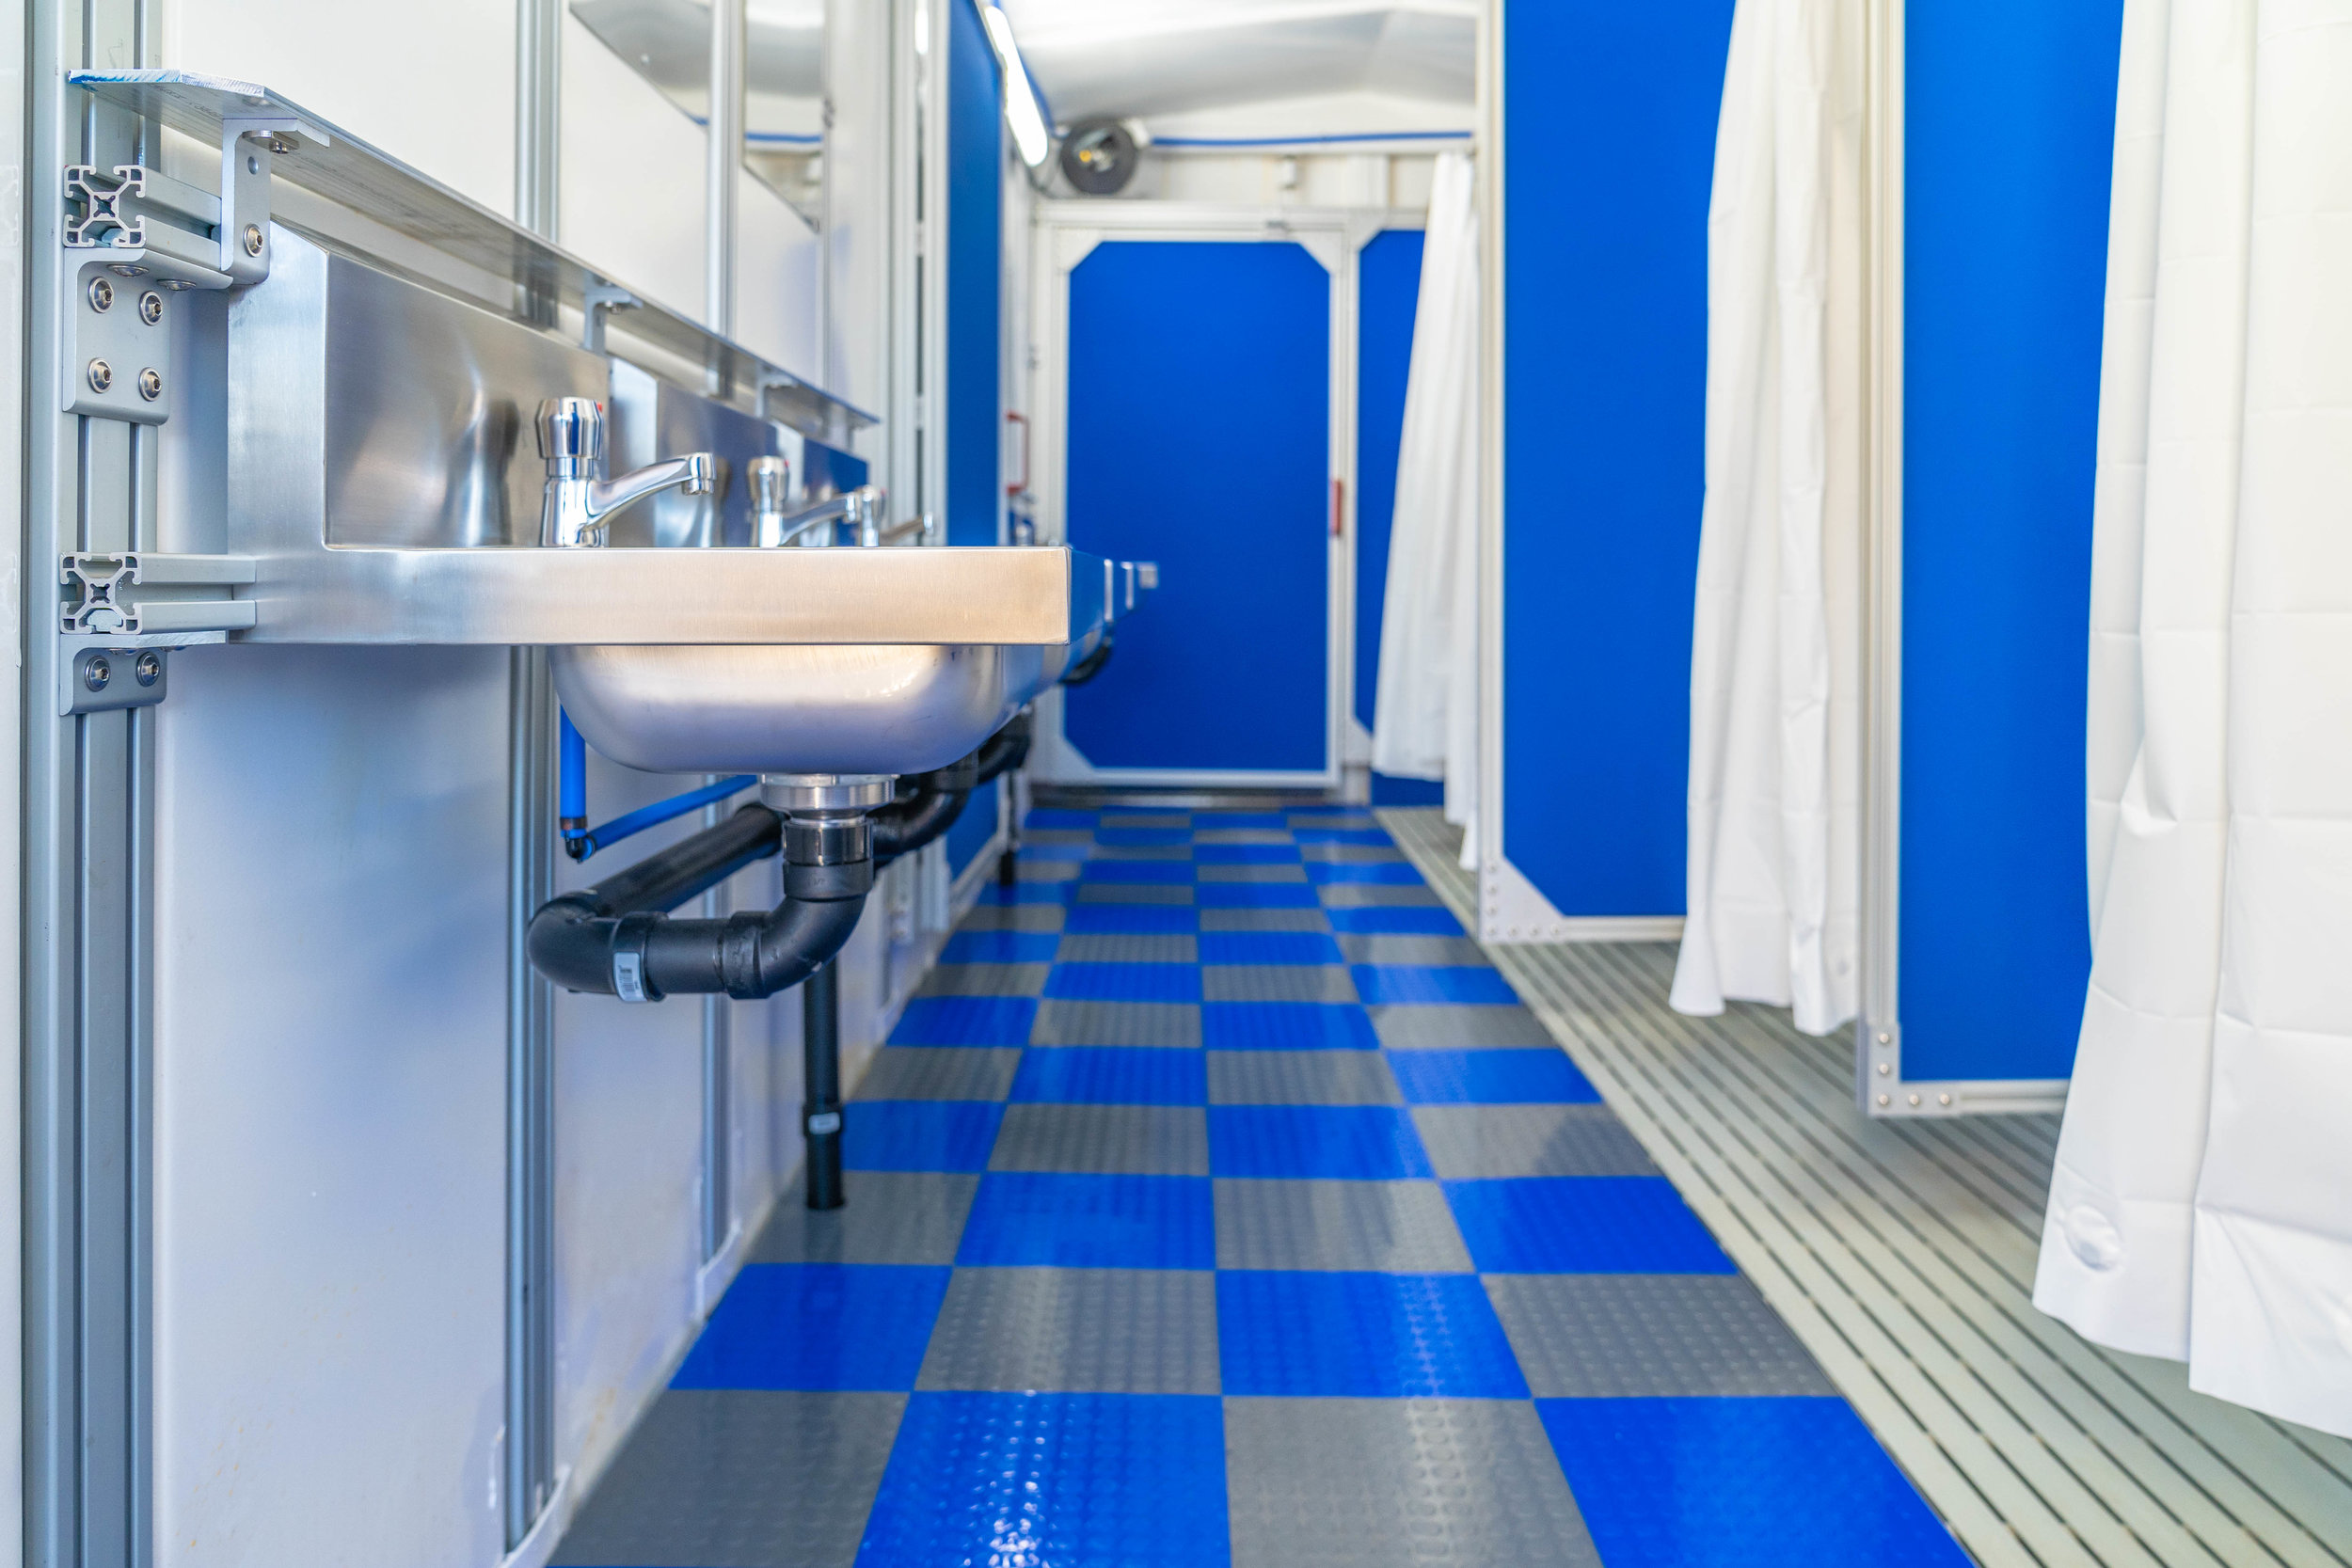 Hygienic Environments - Medical-grade and antibacterial materials are used to provide easily cleanable surfaces and a safe and secure interior environment.